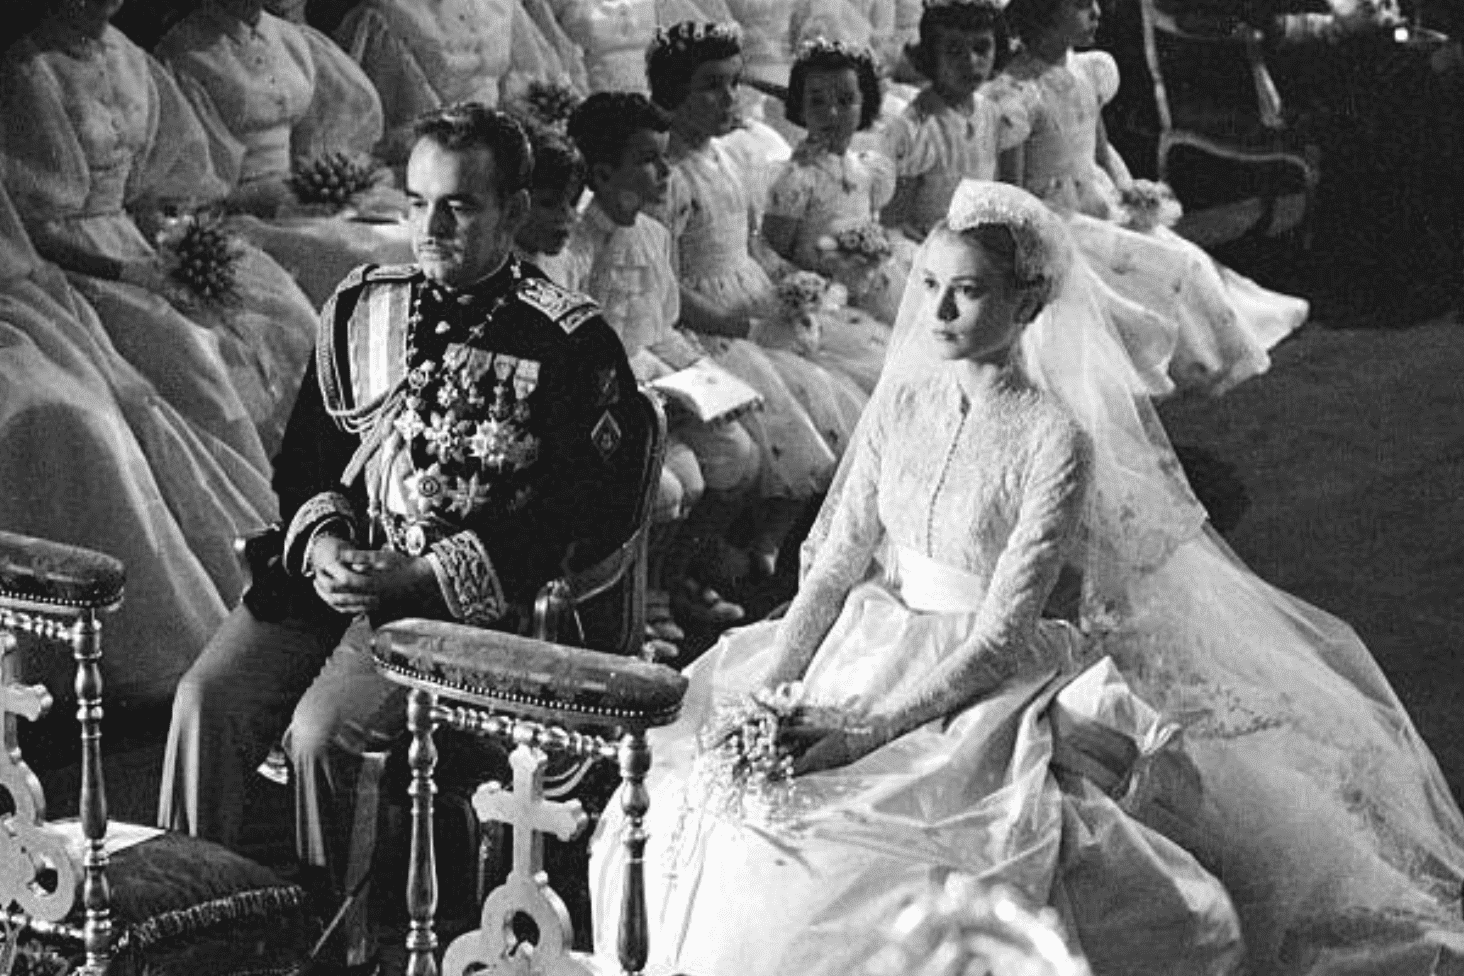 Grace Kelly and Prince Rainier's seated during their wedding ceremonyat theCathedral of Our Lady Immaculate in 1965, Monaco. | Photo: Getty Images.